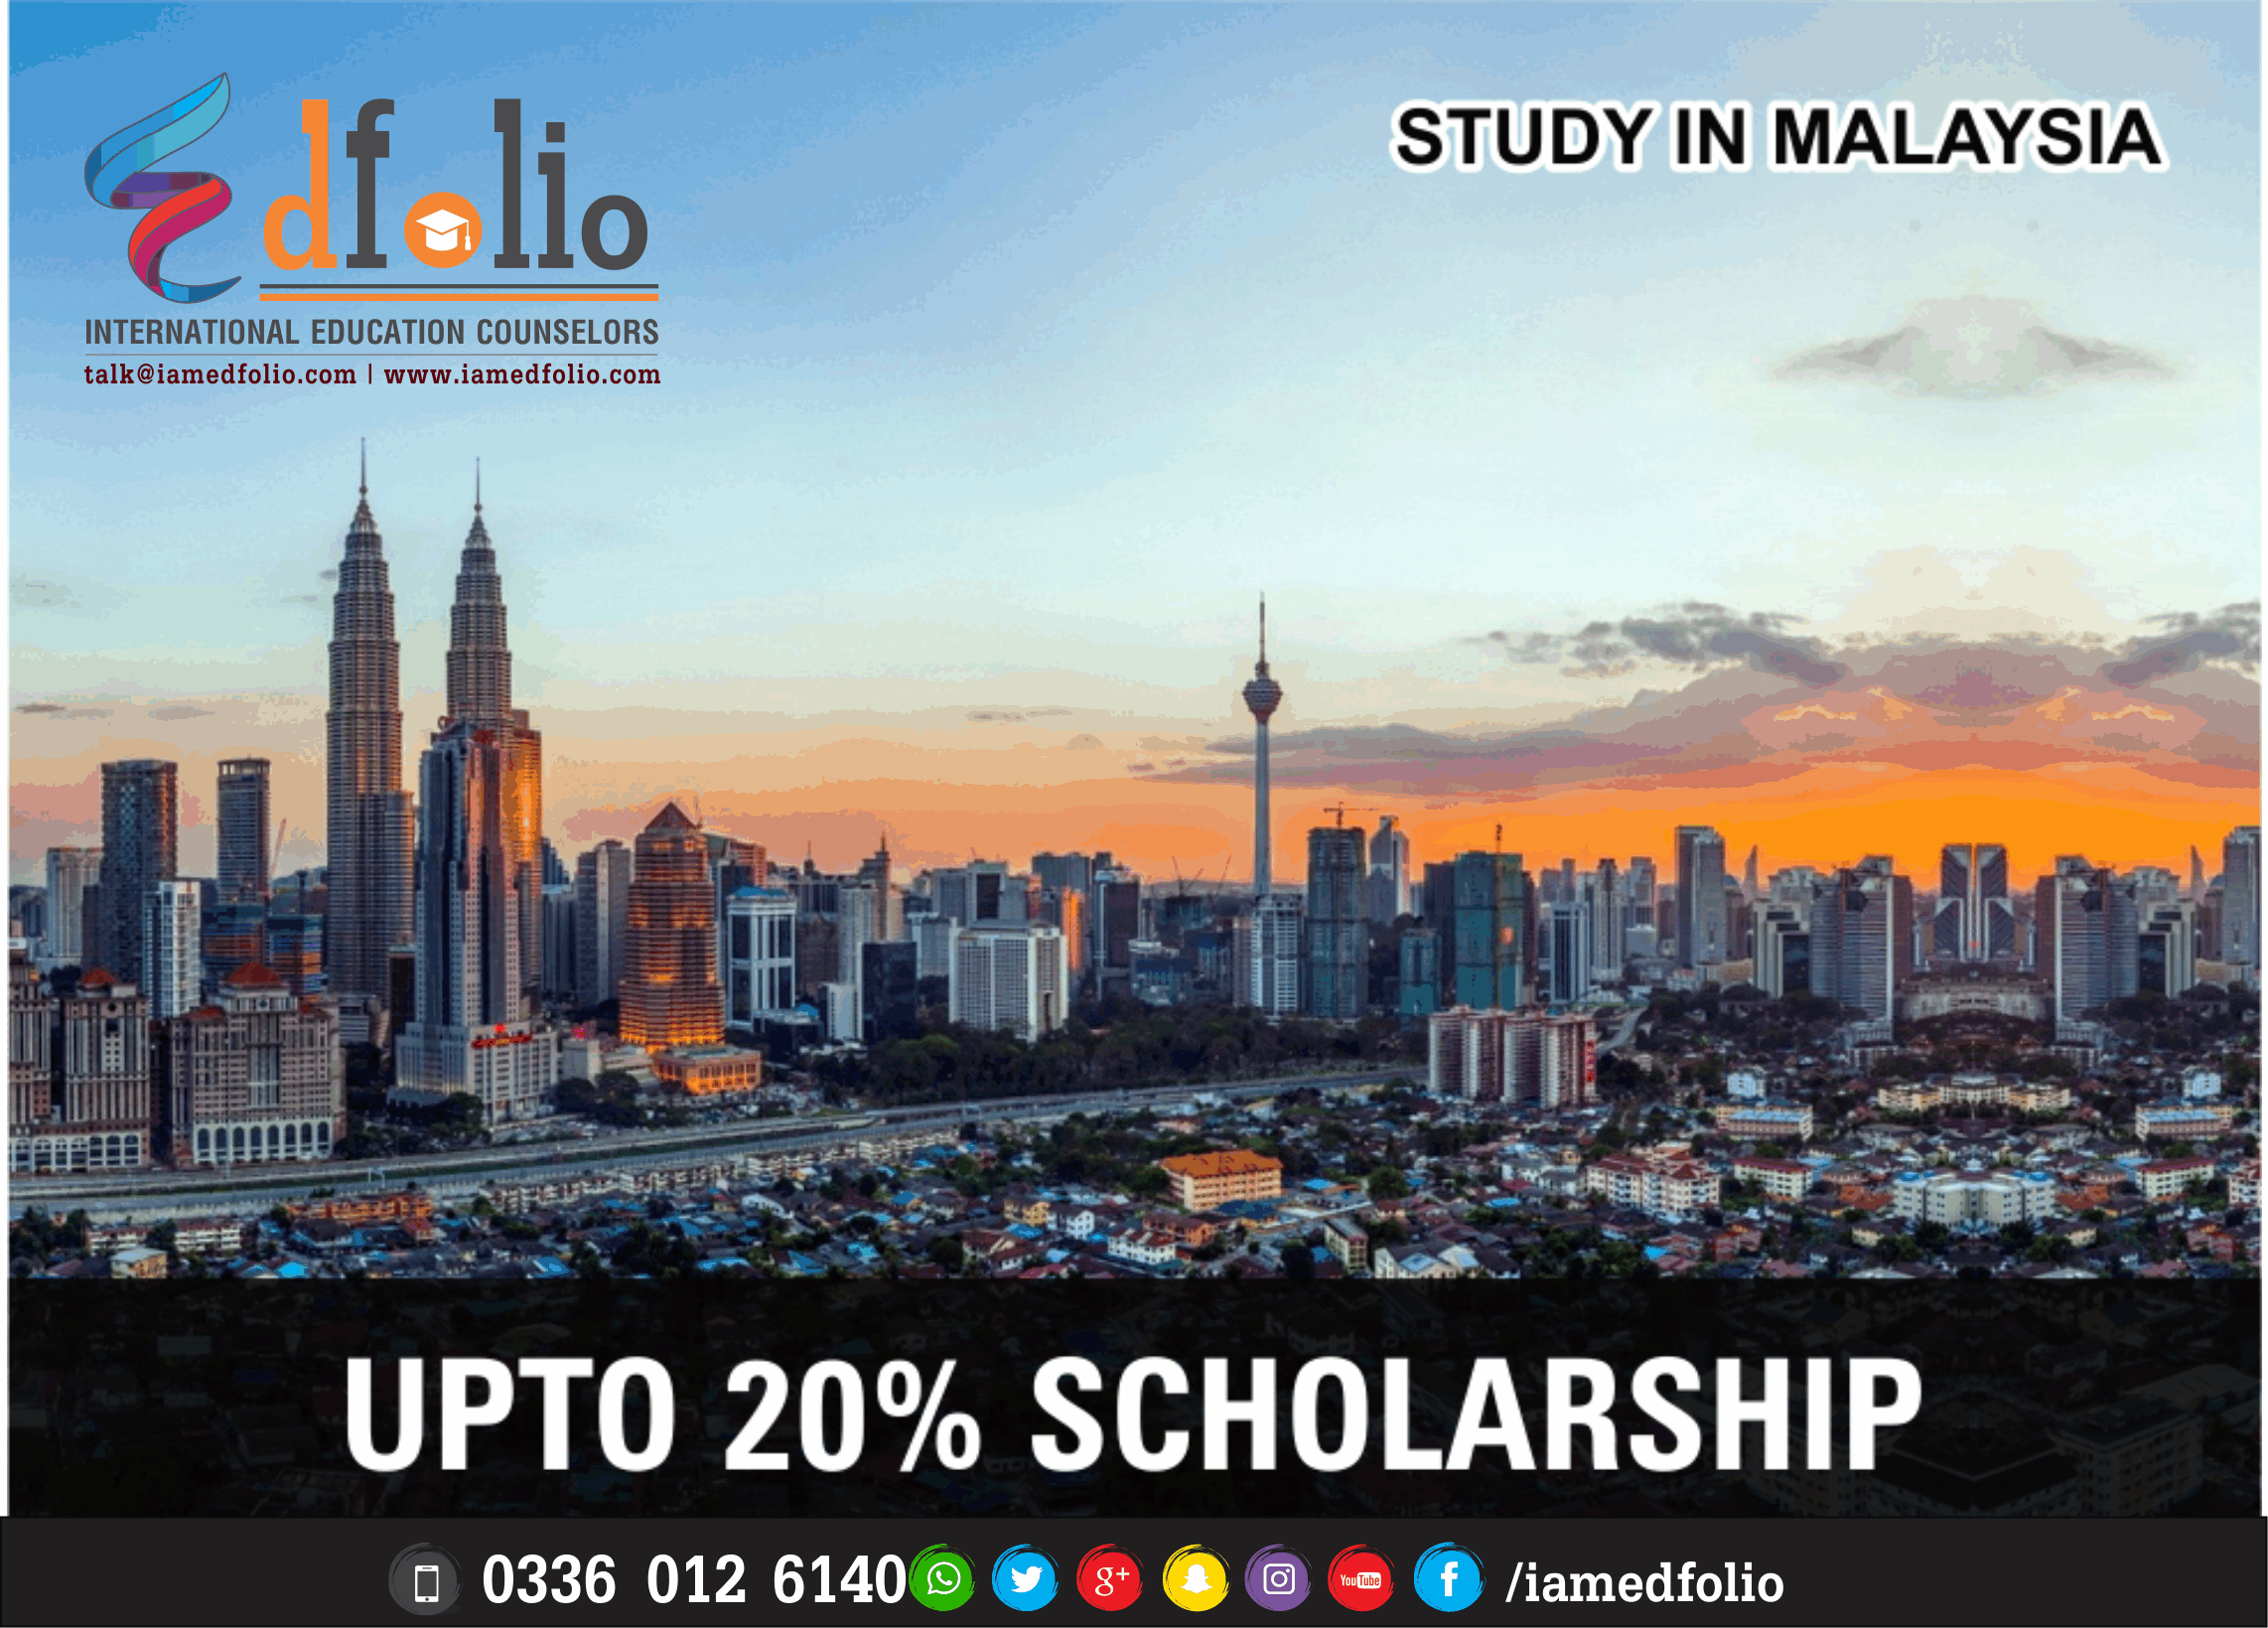 SCHOLARSHIPS IN MALAYSIA - EdFolio International Education Consultant and Counselors